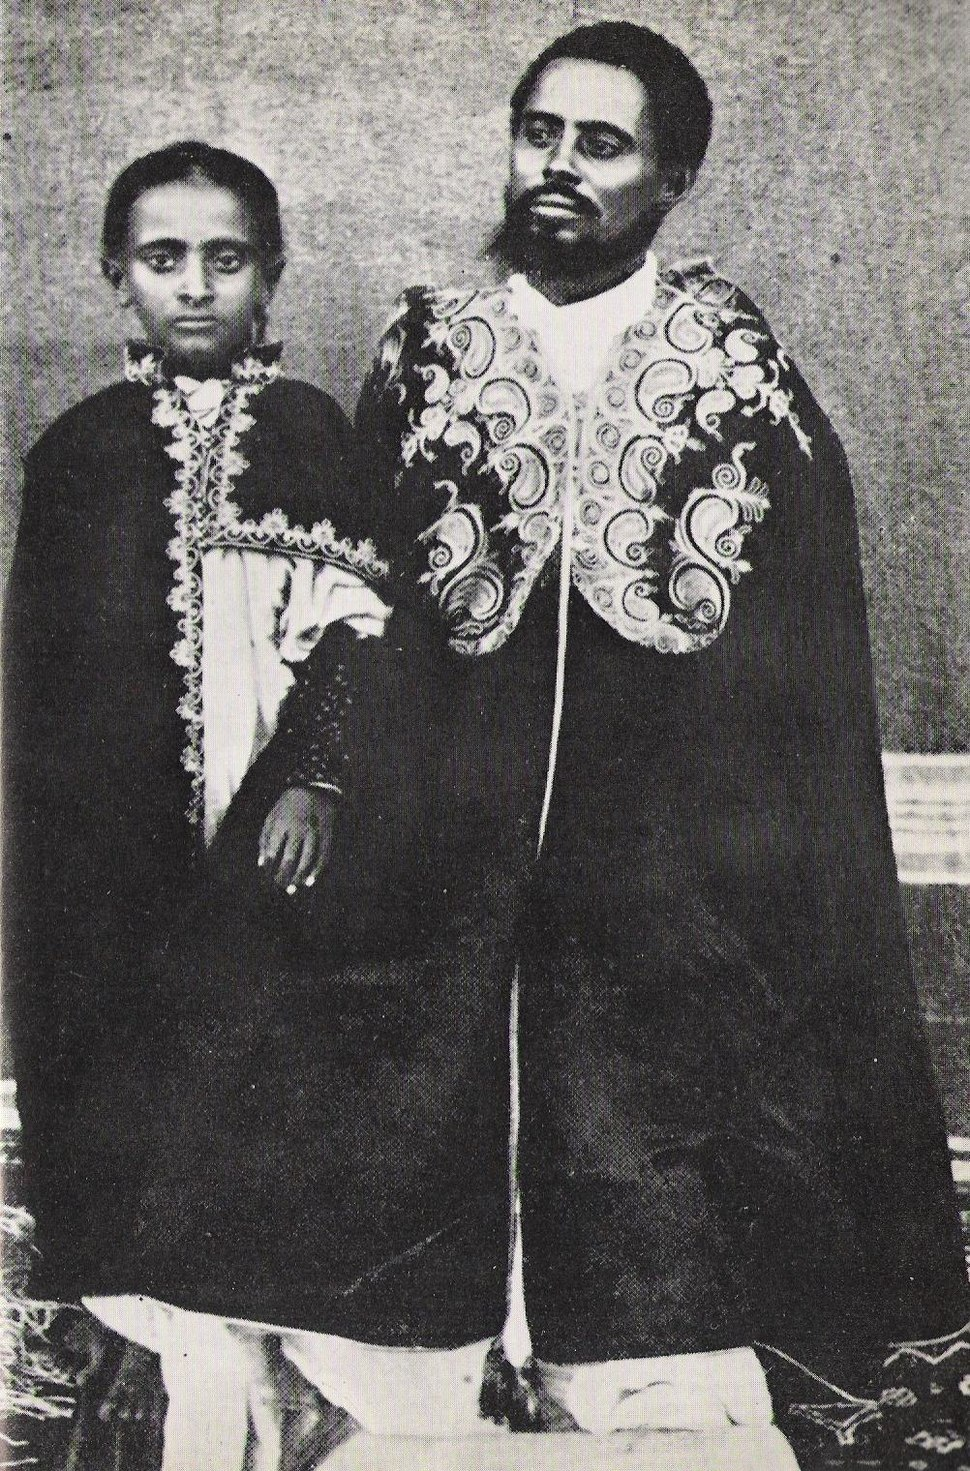 Lij Teferi and his father, Ras Makonnen